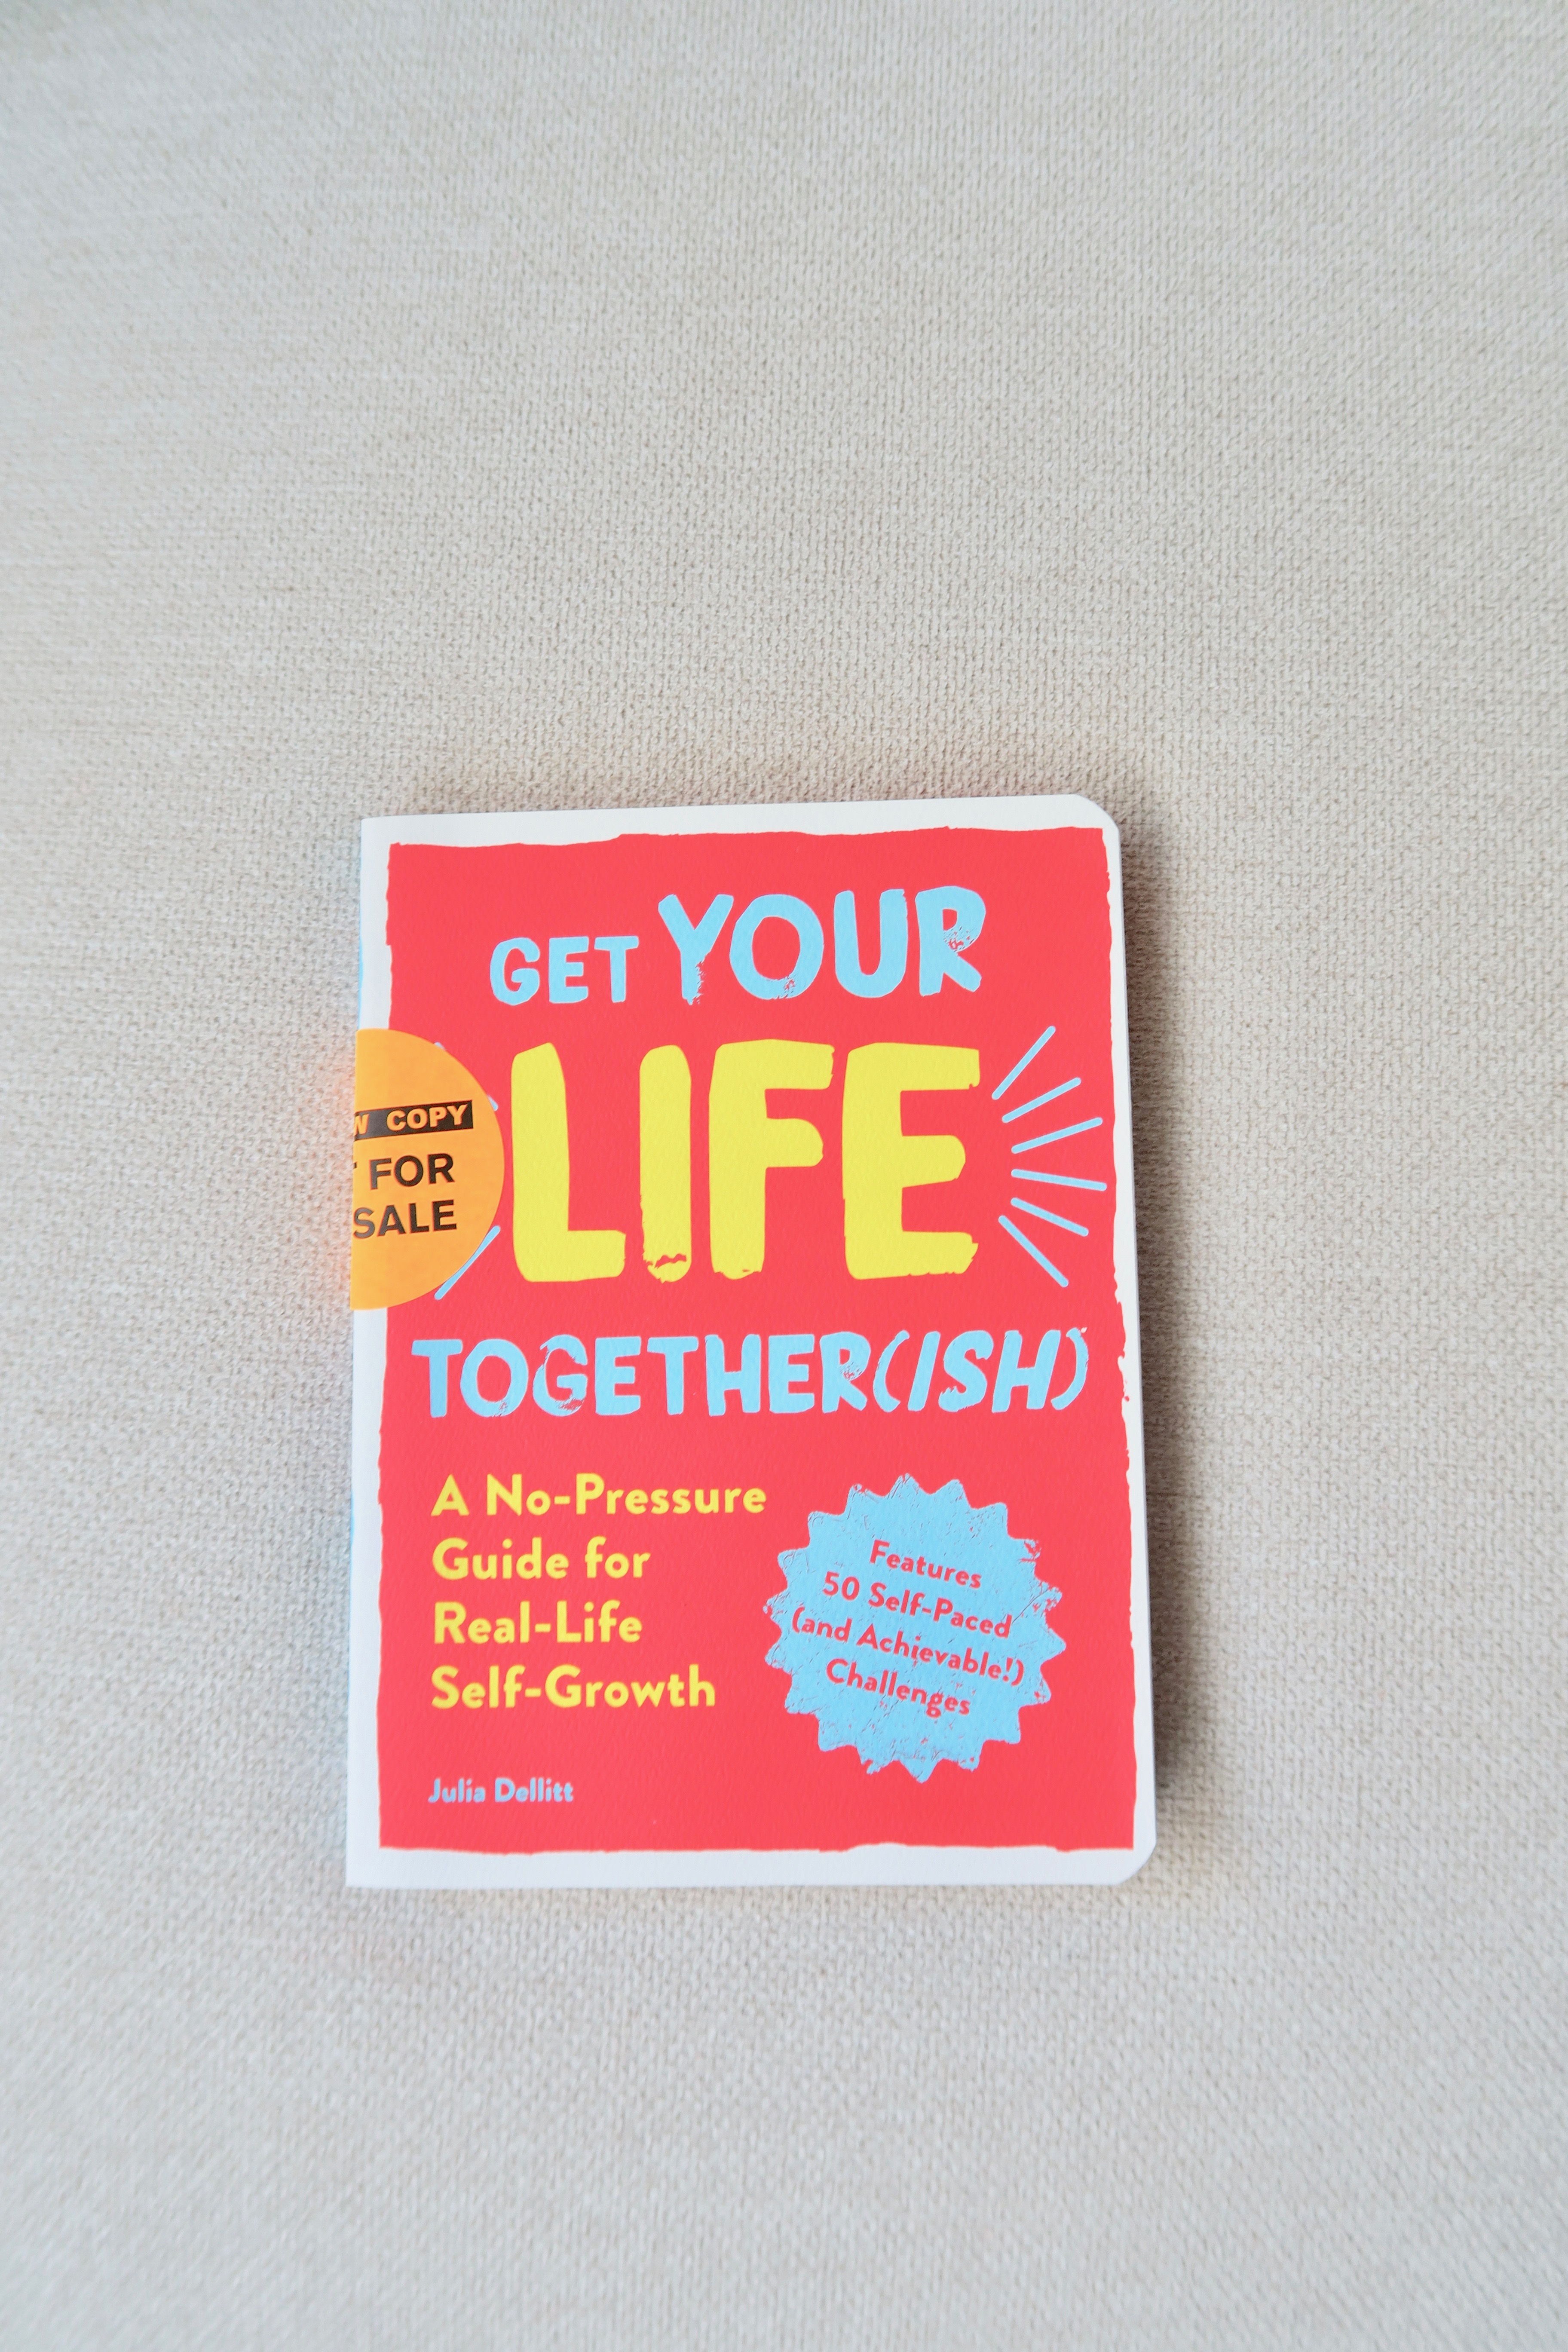 Get Your Life Together(ish): A No-Pressure Guide for Real-Life Self-Growth by Julia Dellitt